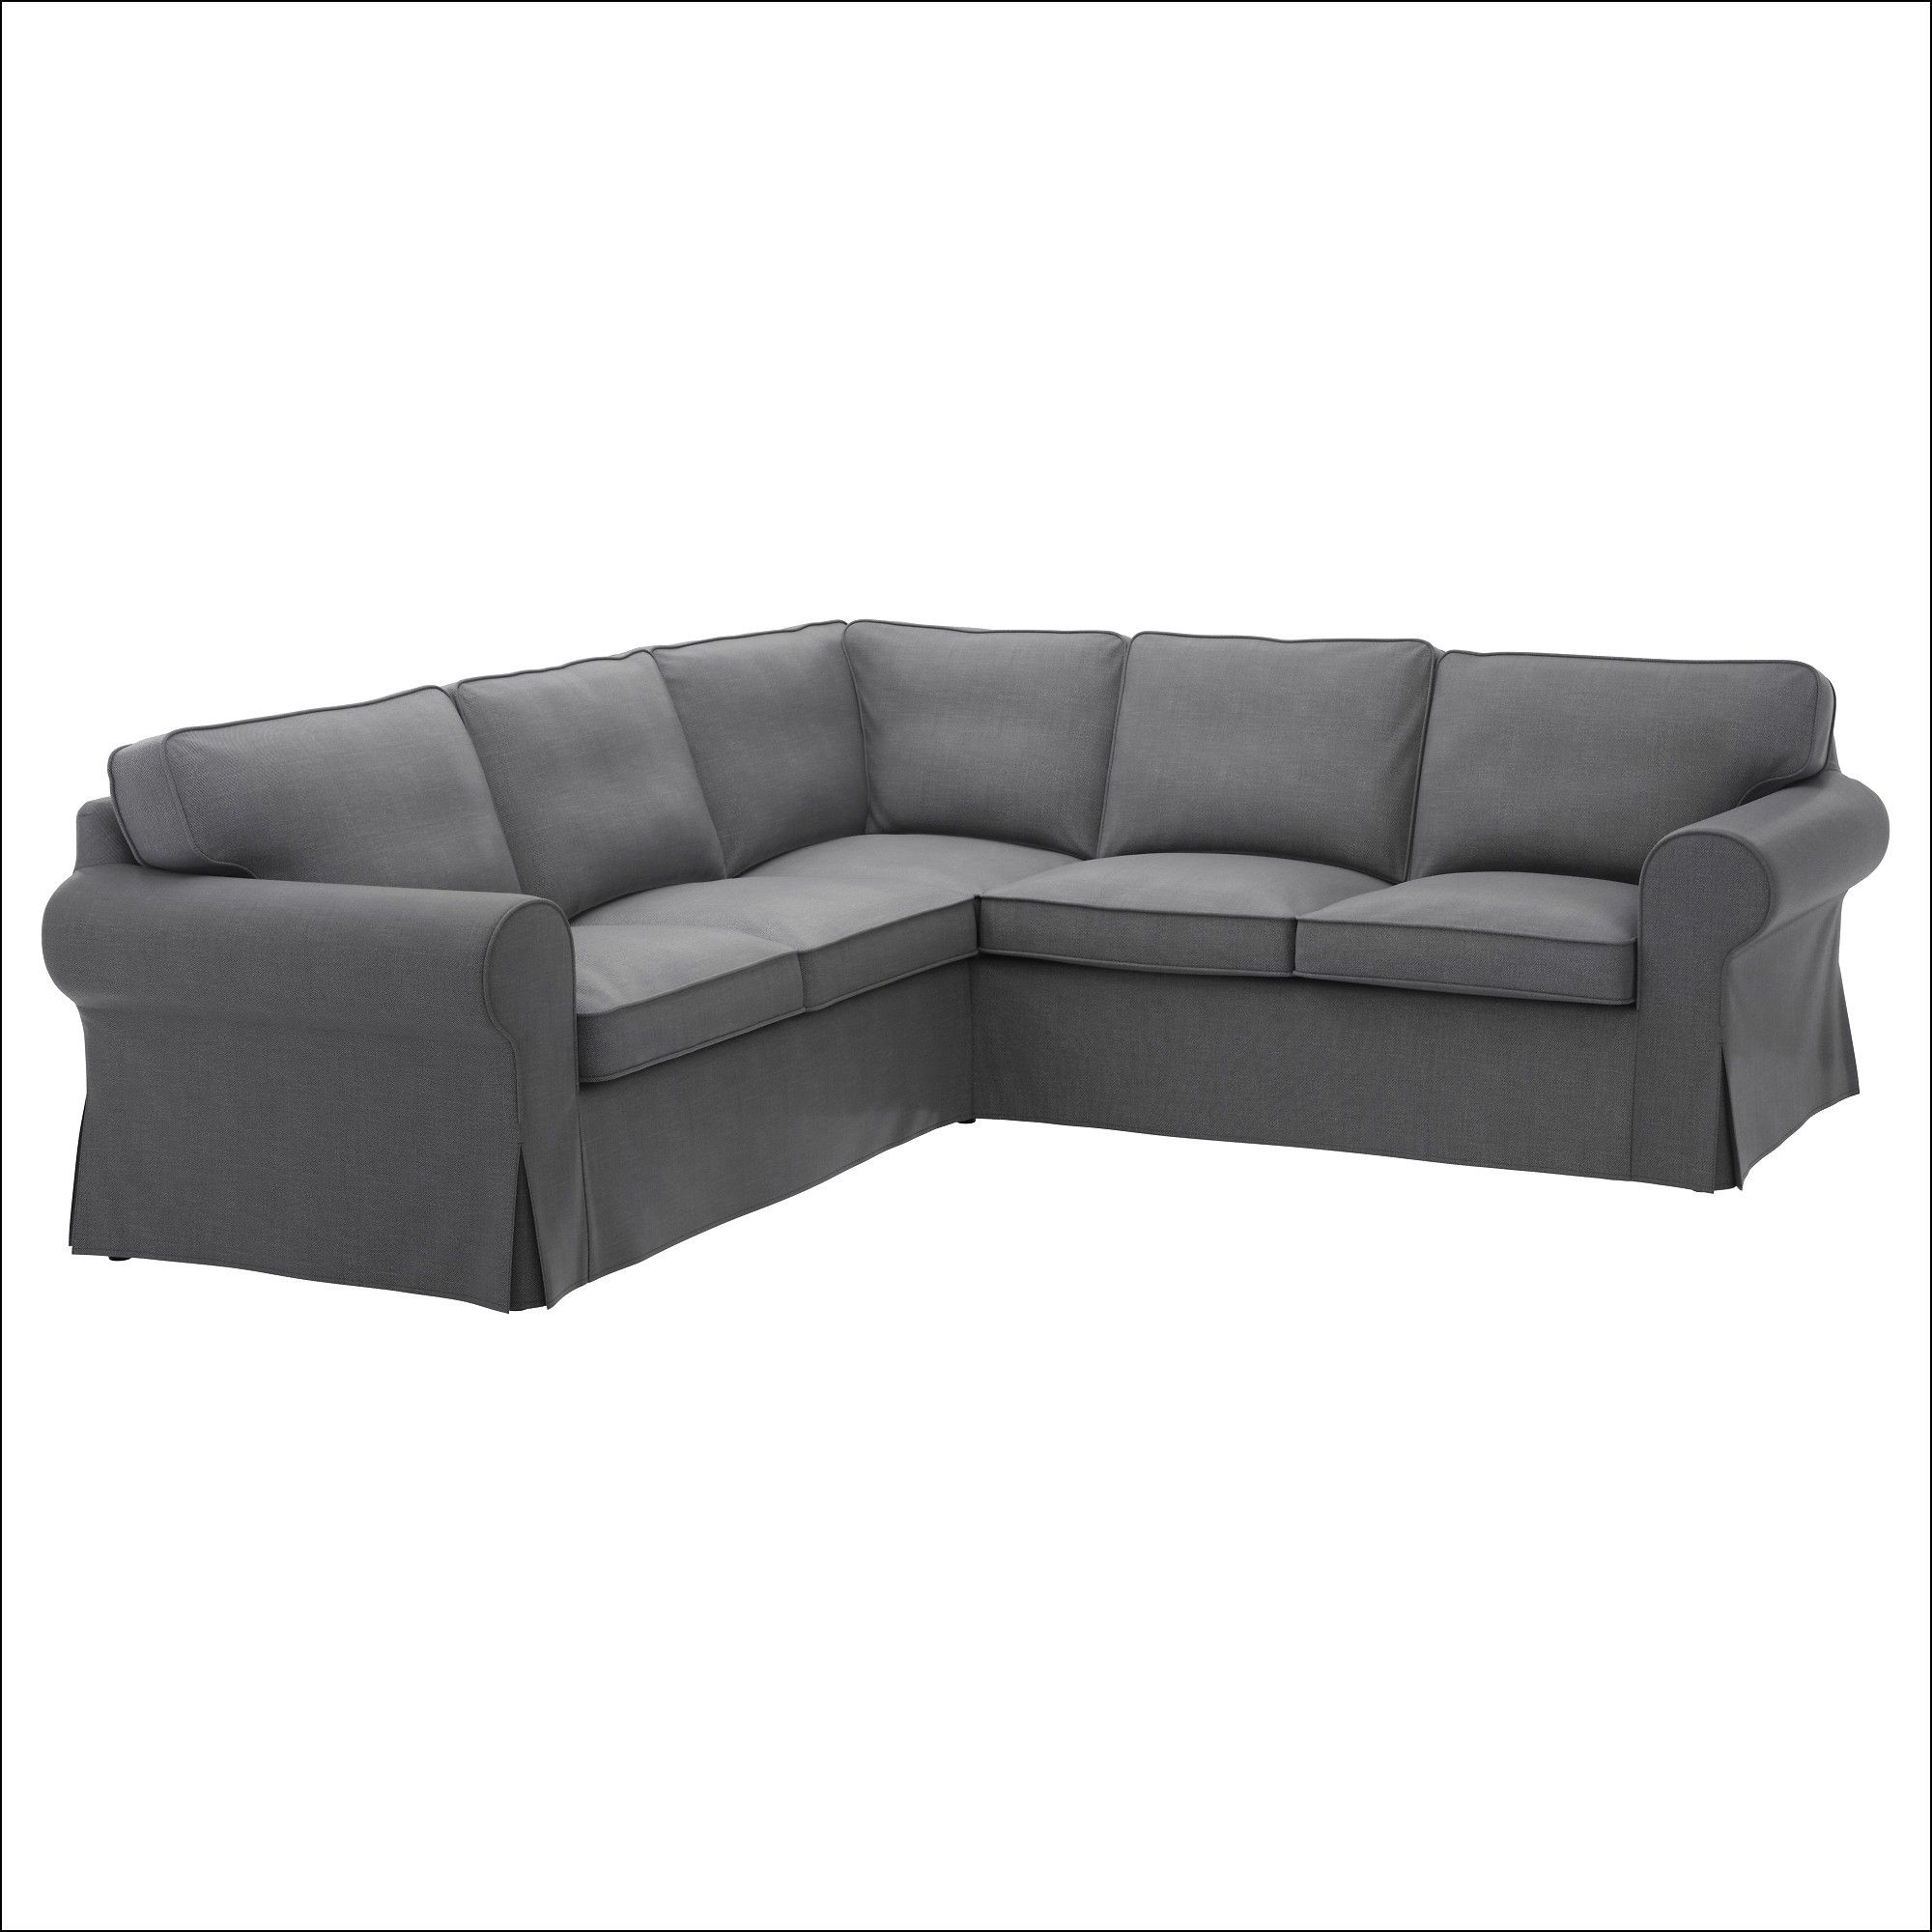 Wrap Around Couch Ikea